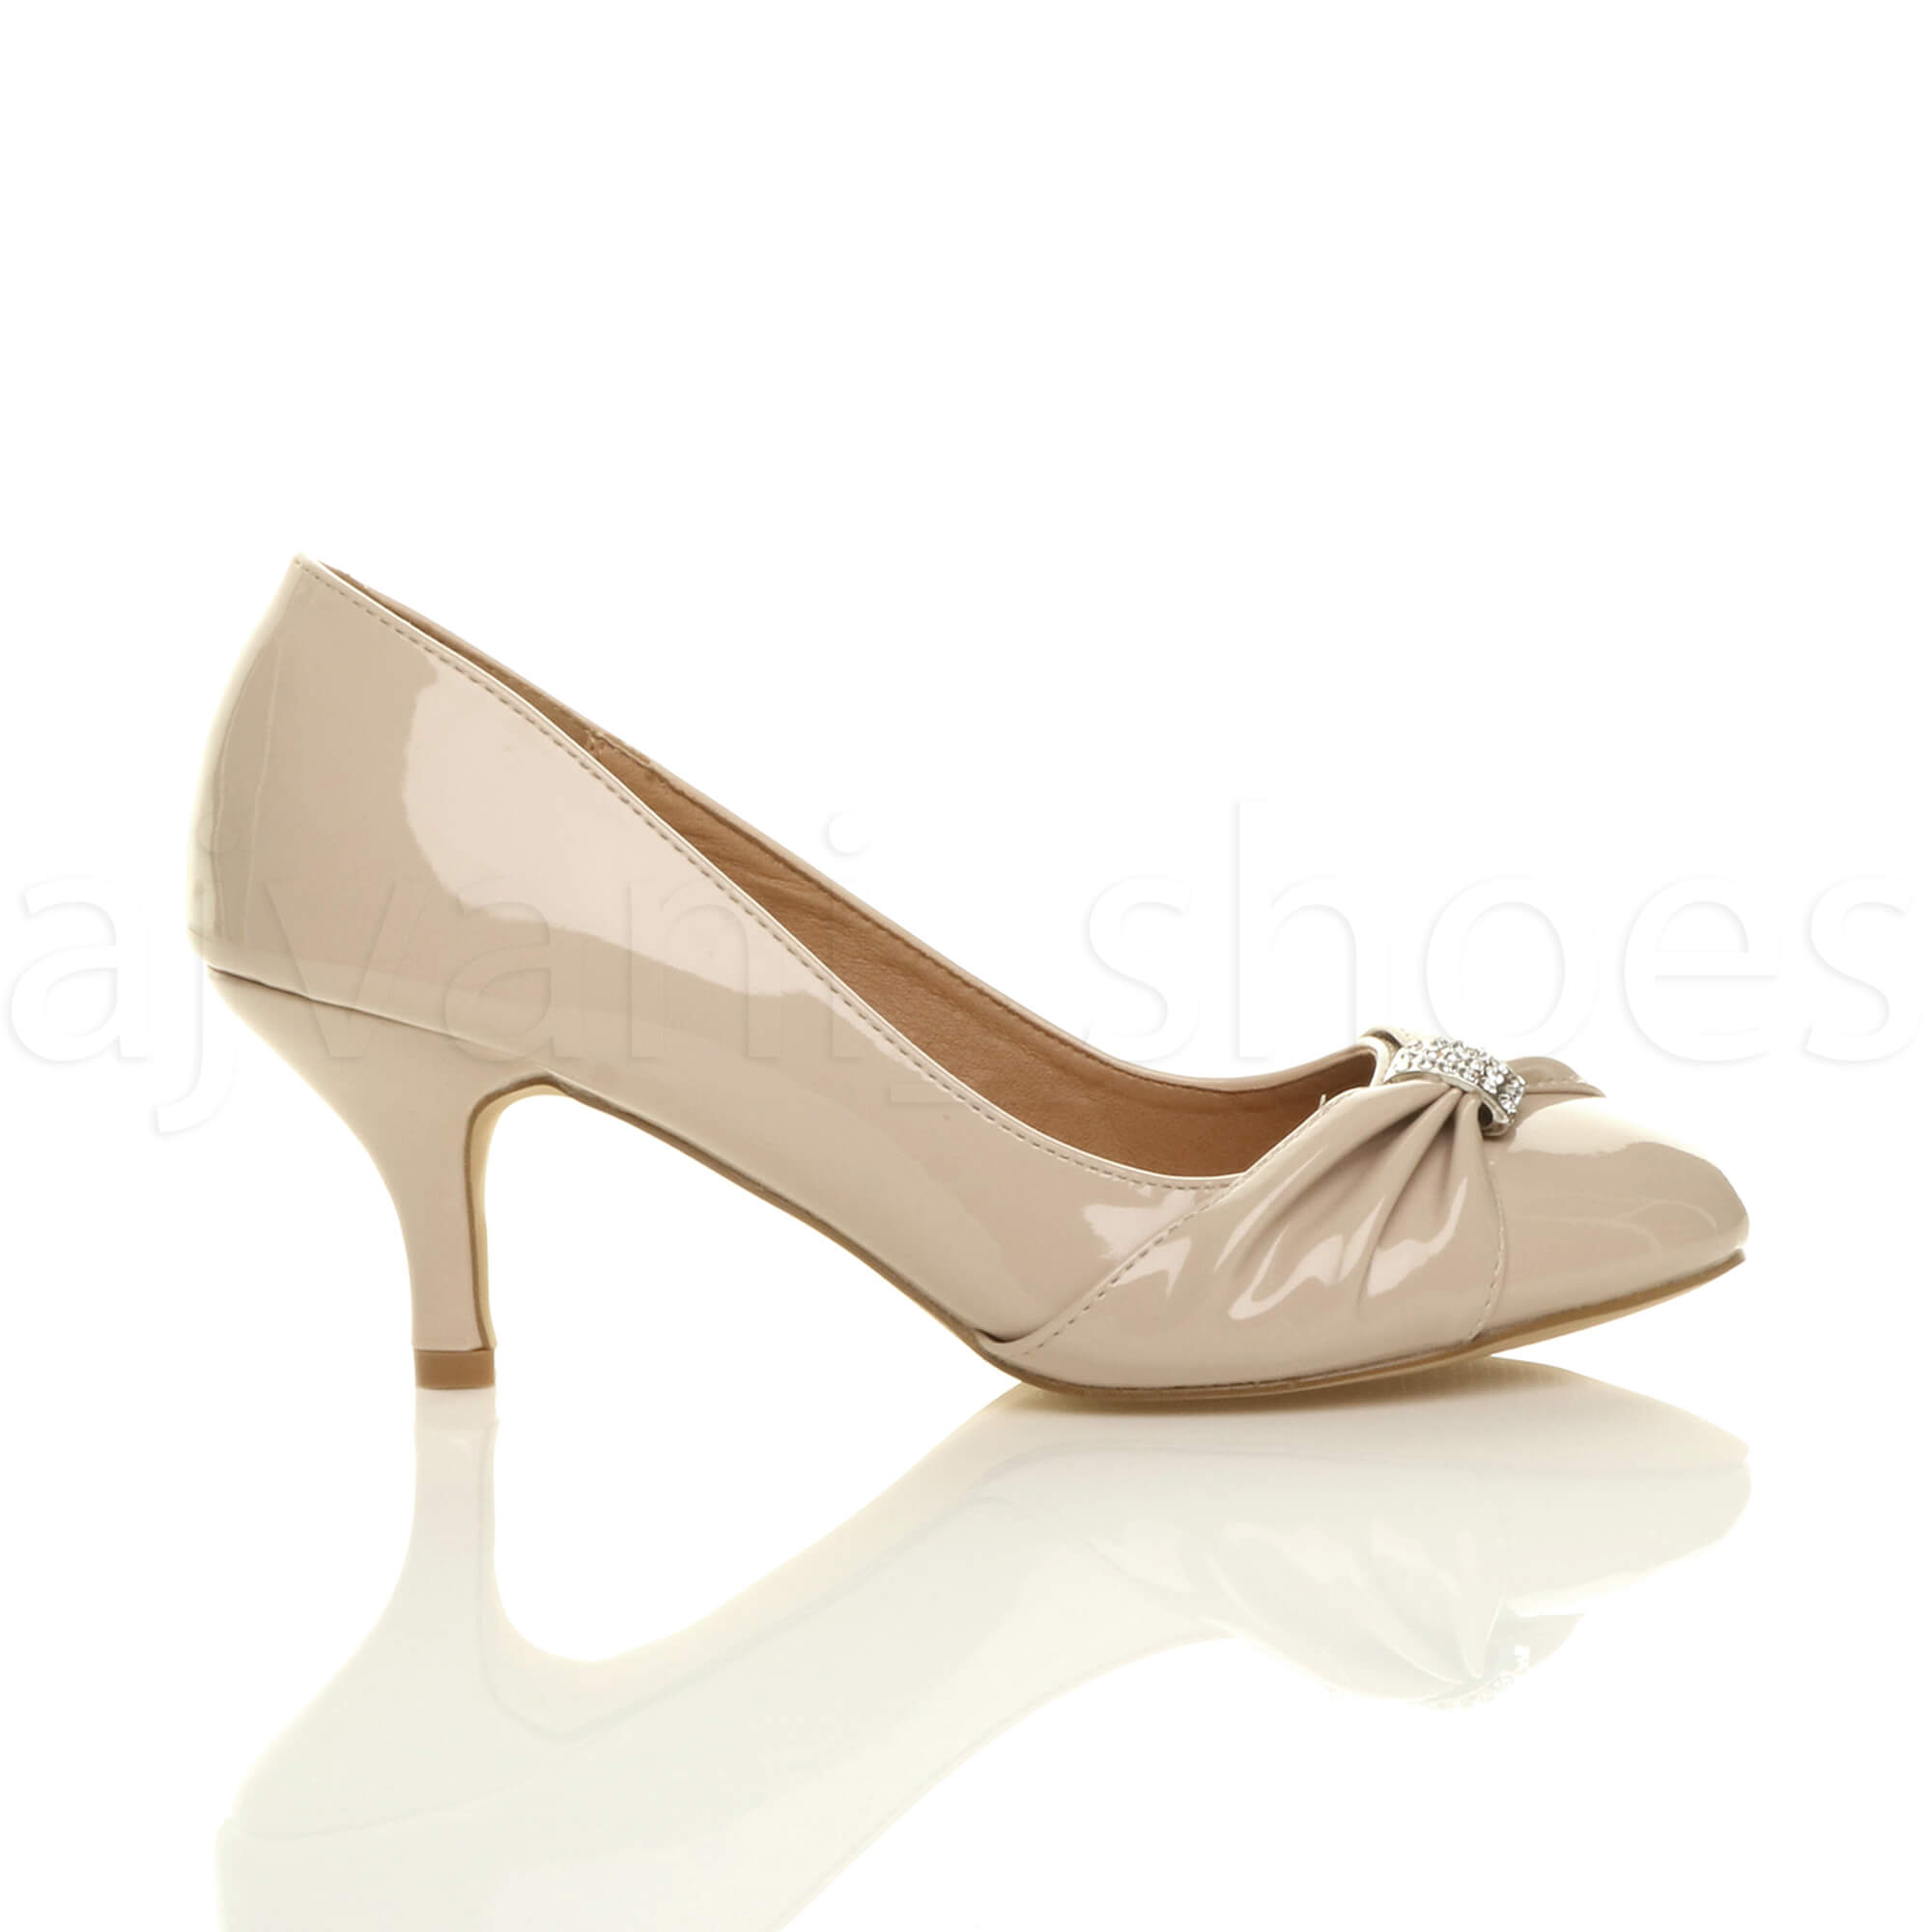 WOMENS-LADIES-MID-HEEL-RUCHED-DIAMANTE-WEDDING-PROM-EVENING-COURT-SHOES-SIZE thumbnail 67